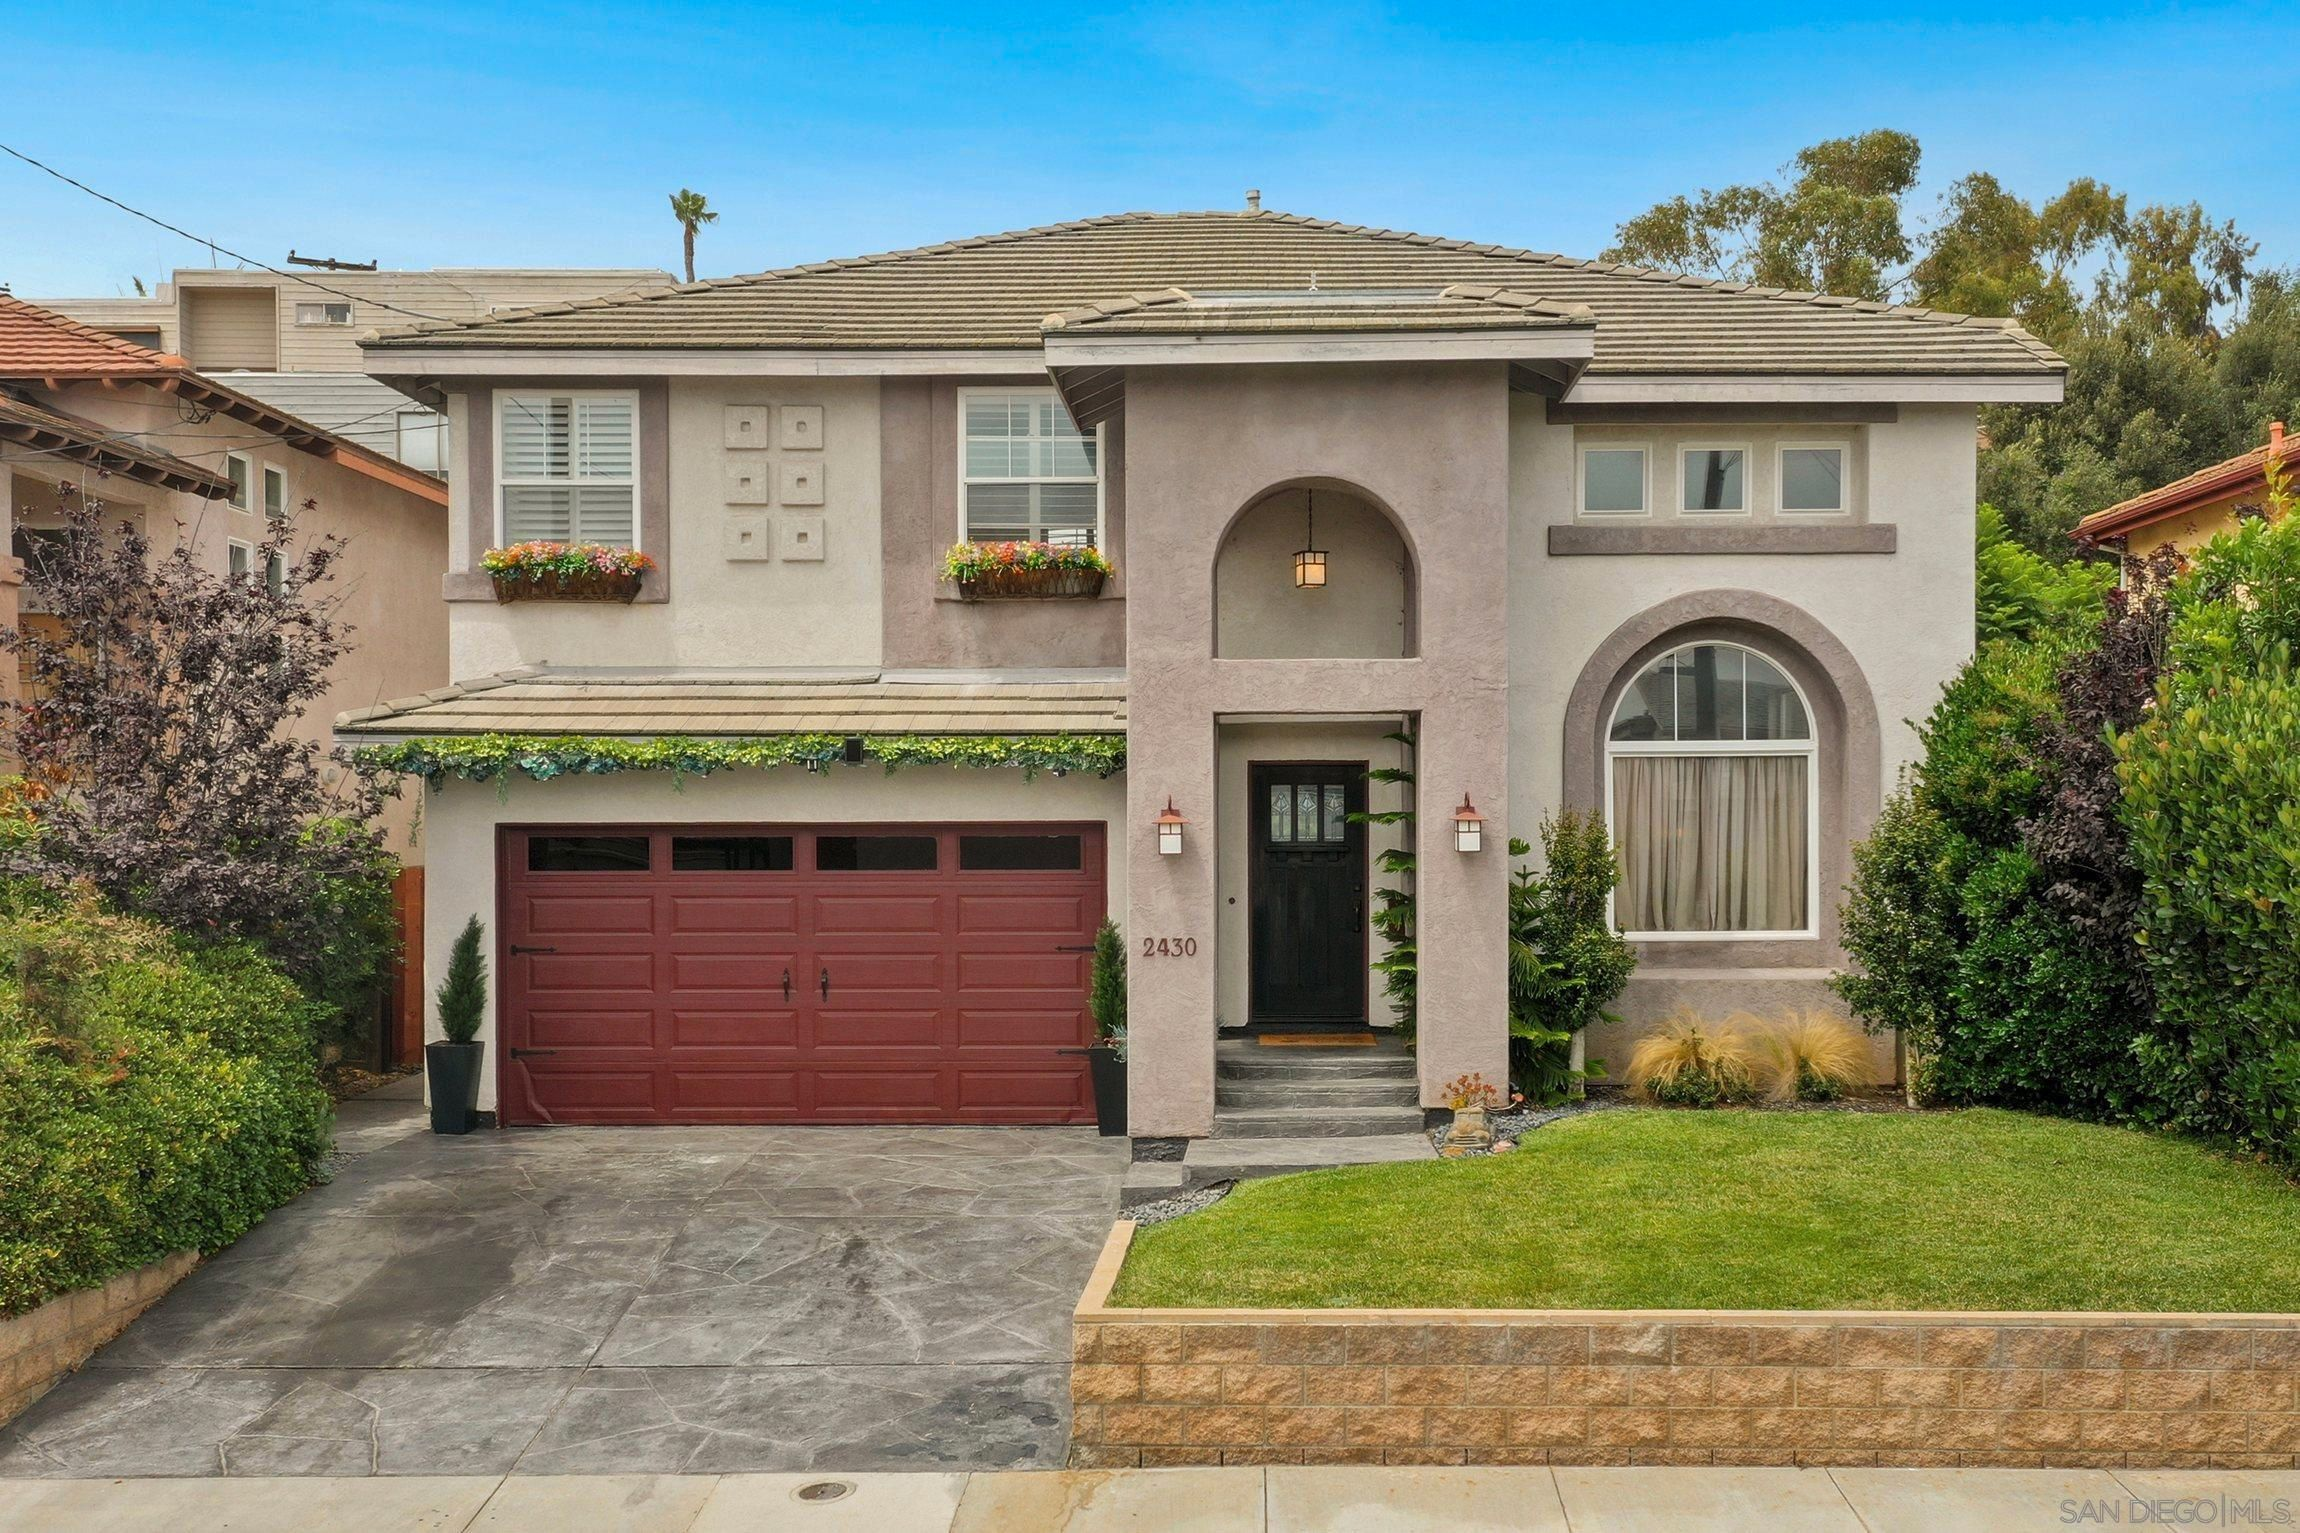 Main Photo: PACIFIC BEACH House for sale : 4 bedrooms : 2430 Geranium St in San Diego